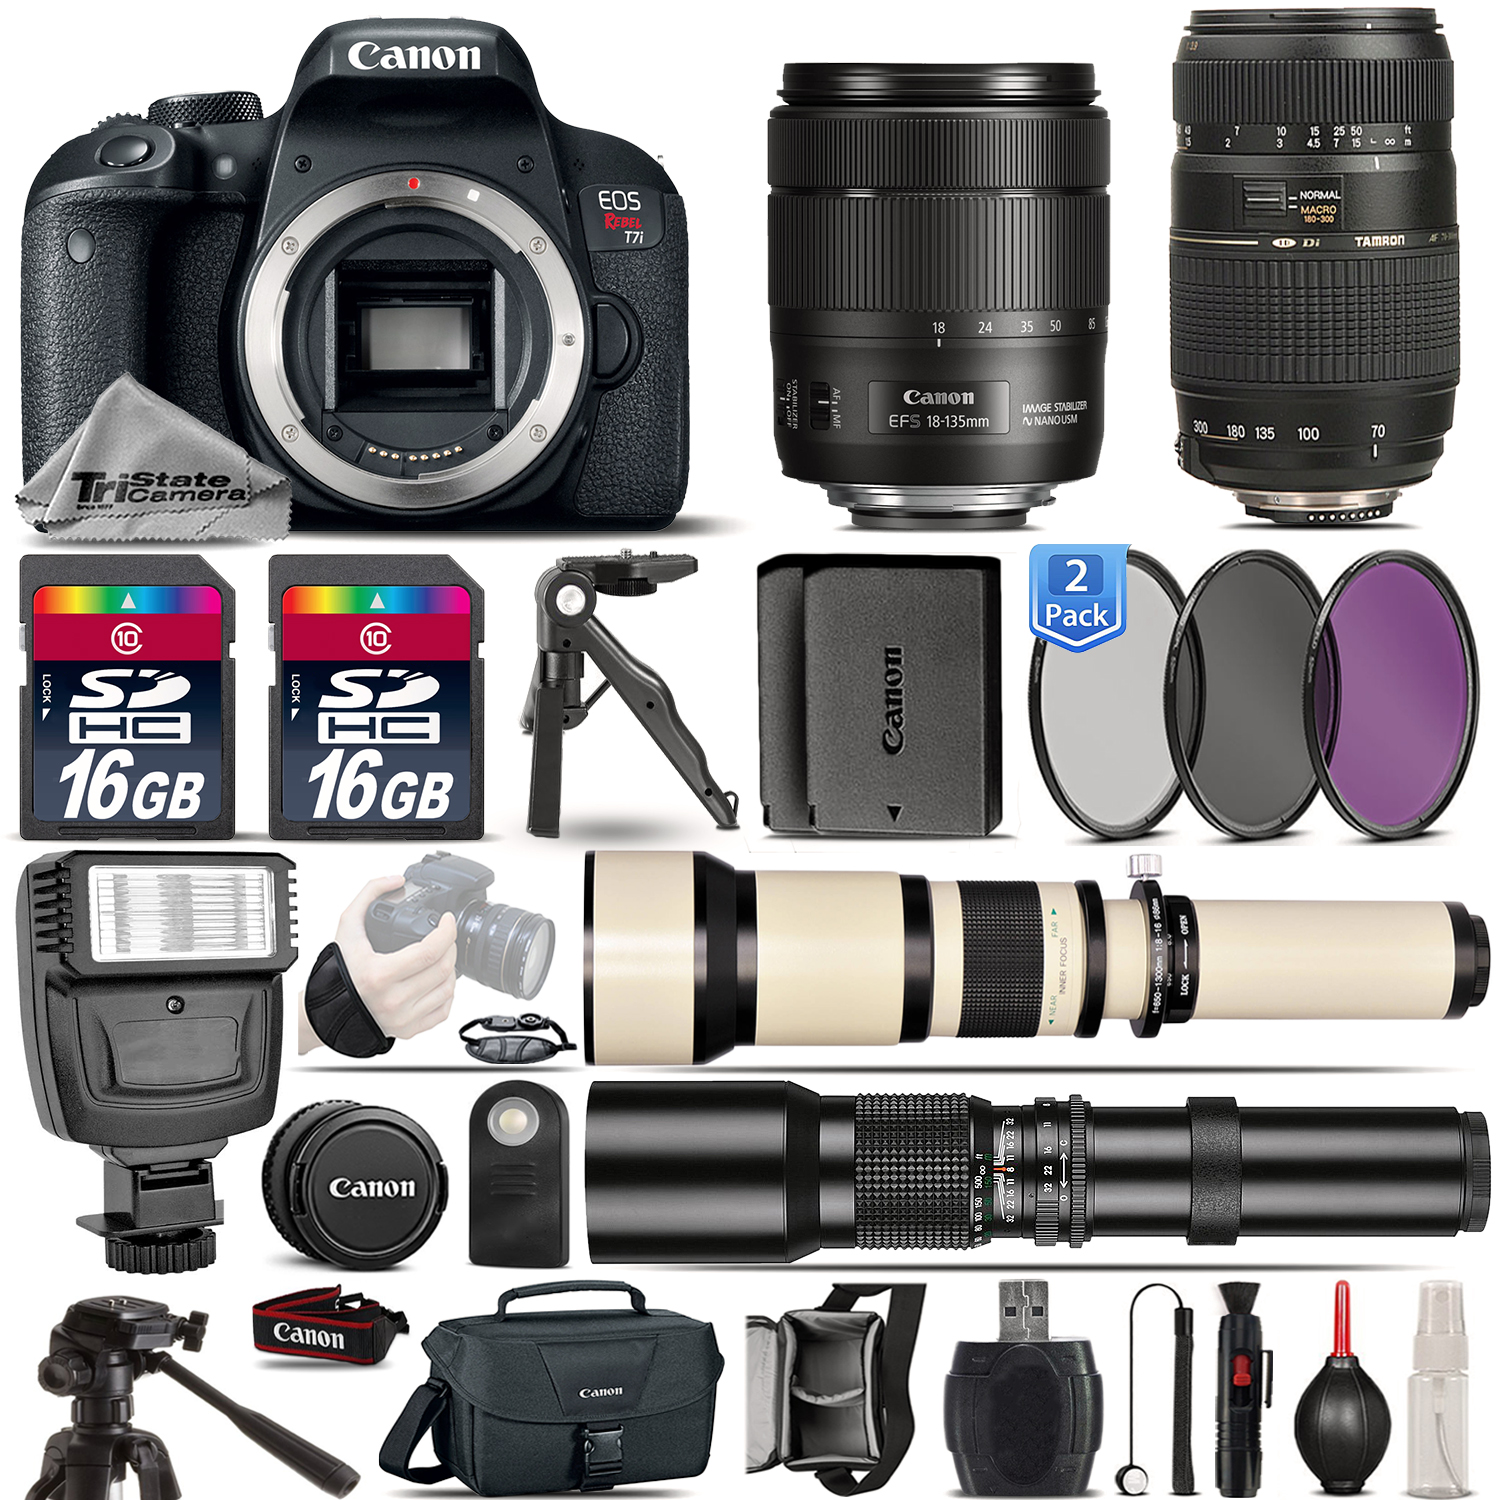 EOS Rebel T7i DSLR Camera + 18-135mm USM + 70-300mm + EXT BATT - 32GB Kit *FREE SHIPPING*